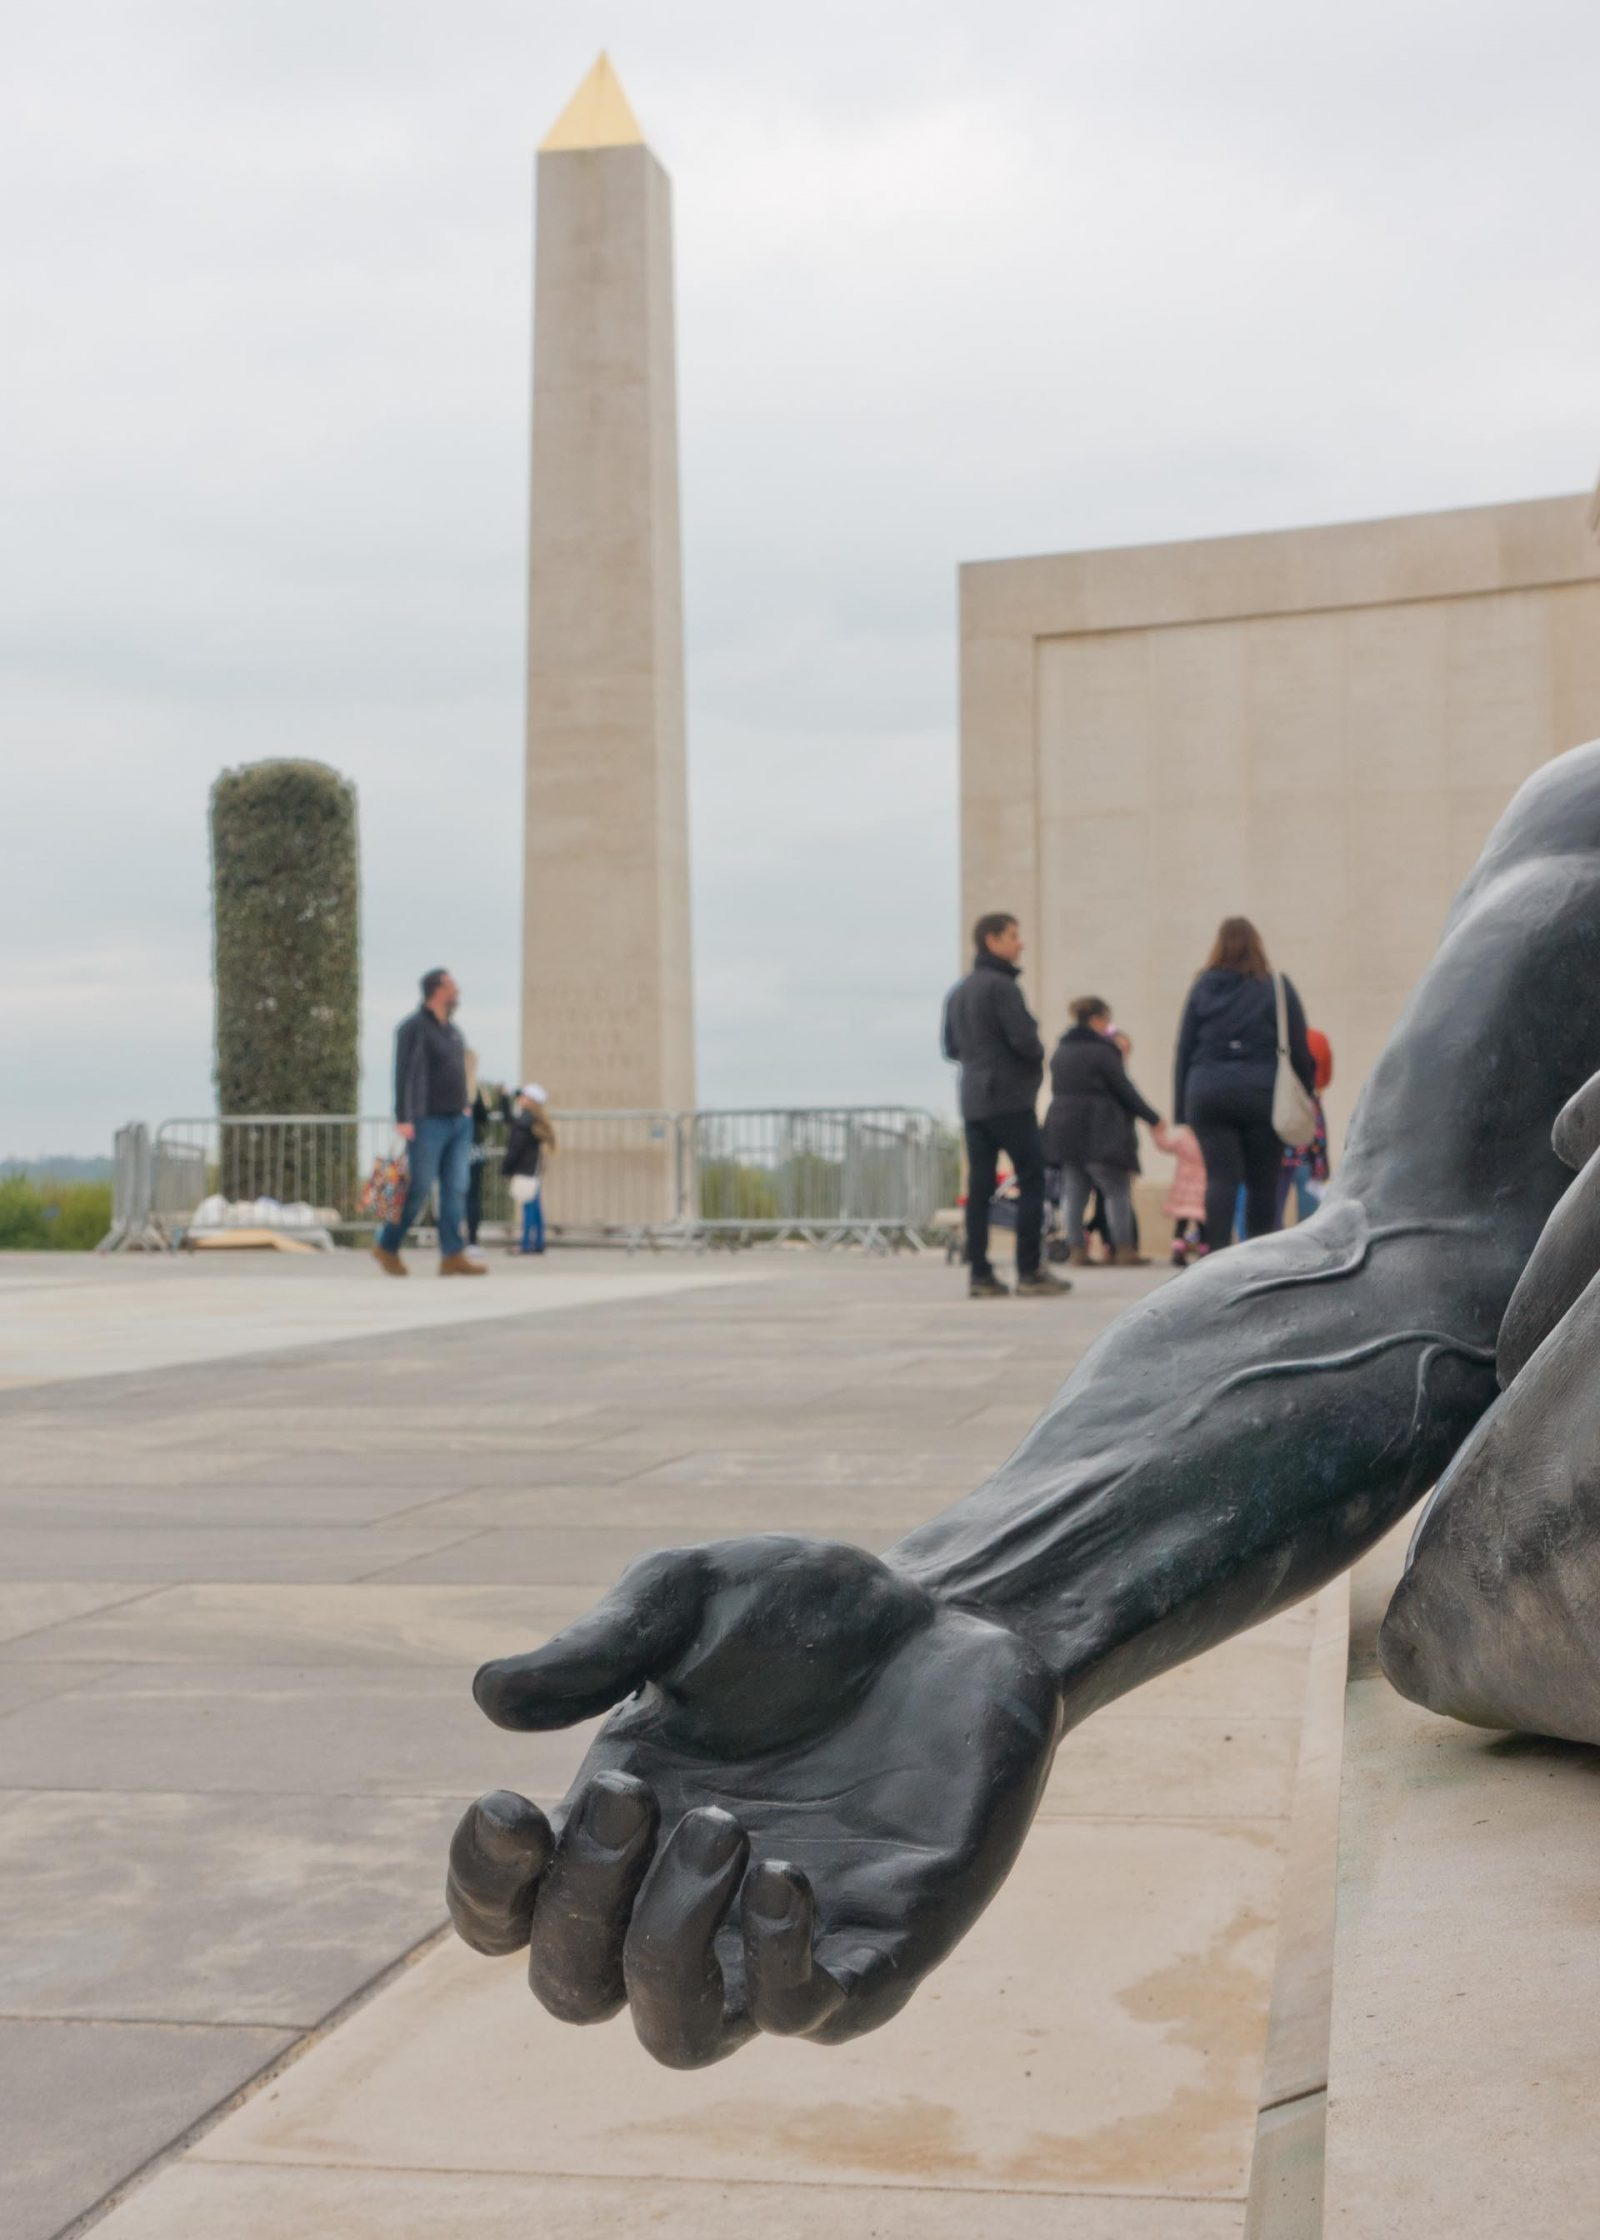 Discovering the National Memorial Arboretum with Kids on Falcondale Life blog. A day out in this sculpture park with visitor facilities including a playground and a review of the restaurant. Visitor information for families.